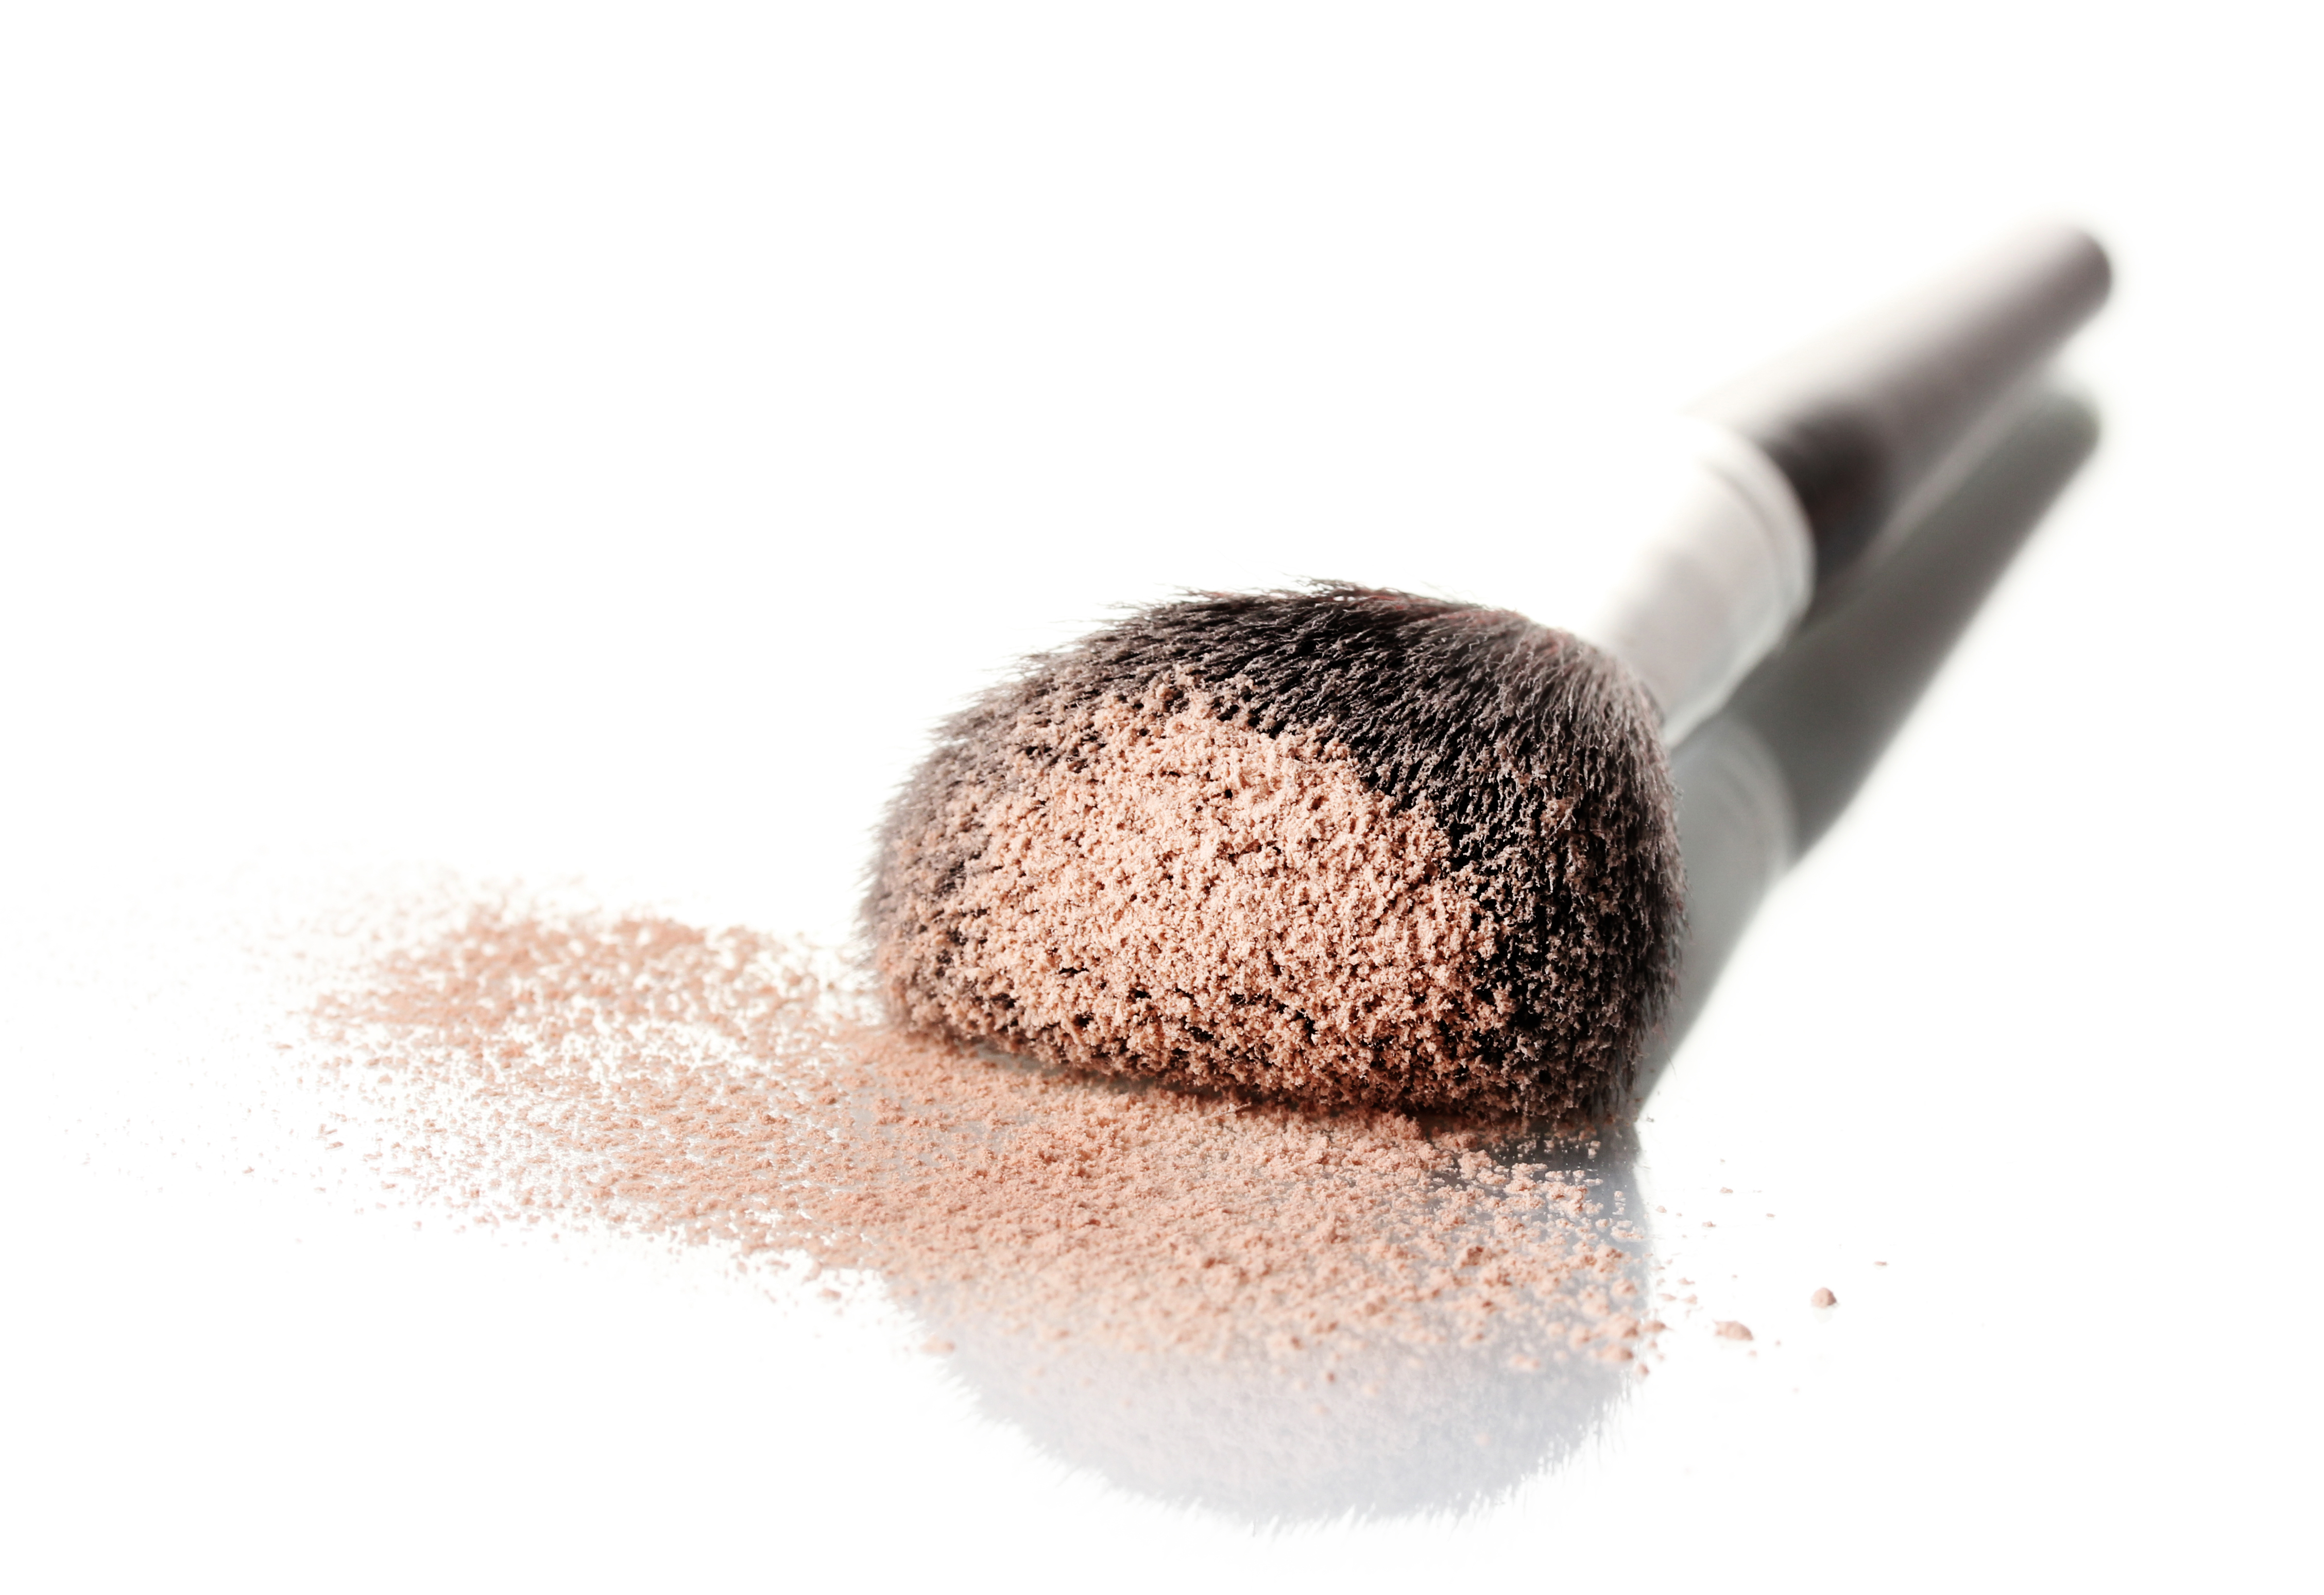 a powder brush laying on a table with a bunch of extra product on the brush and table